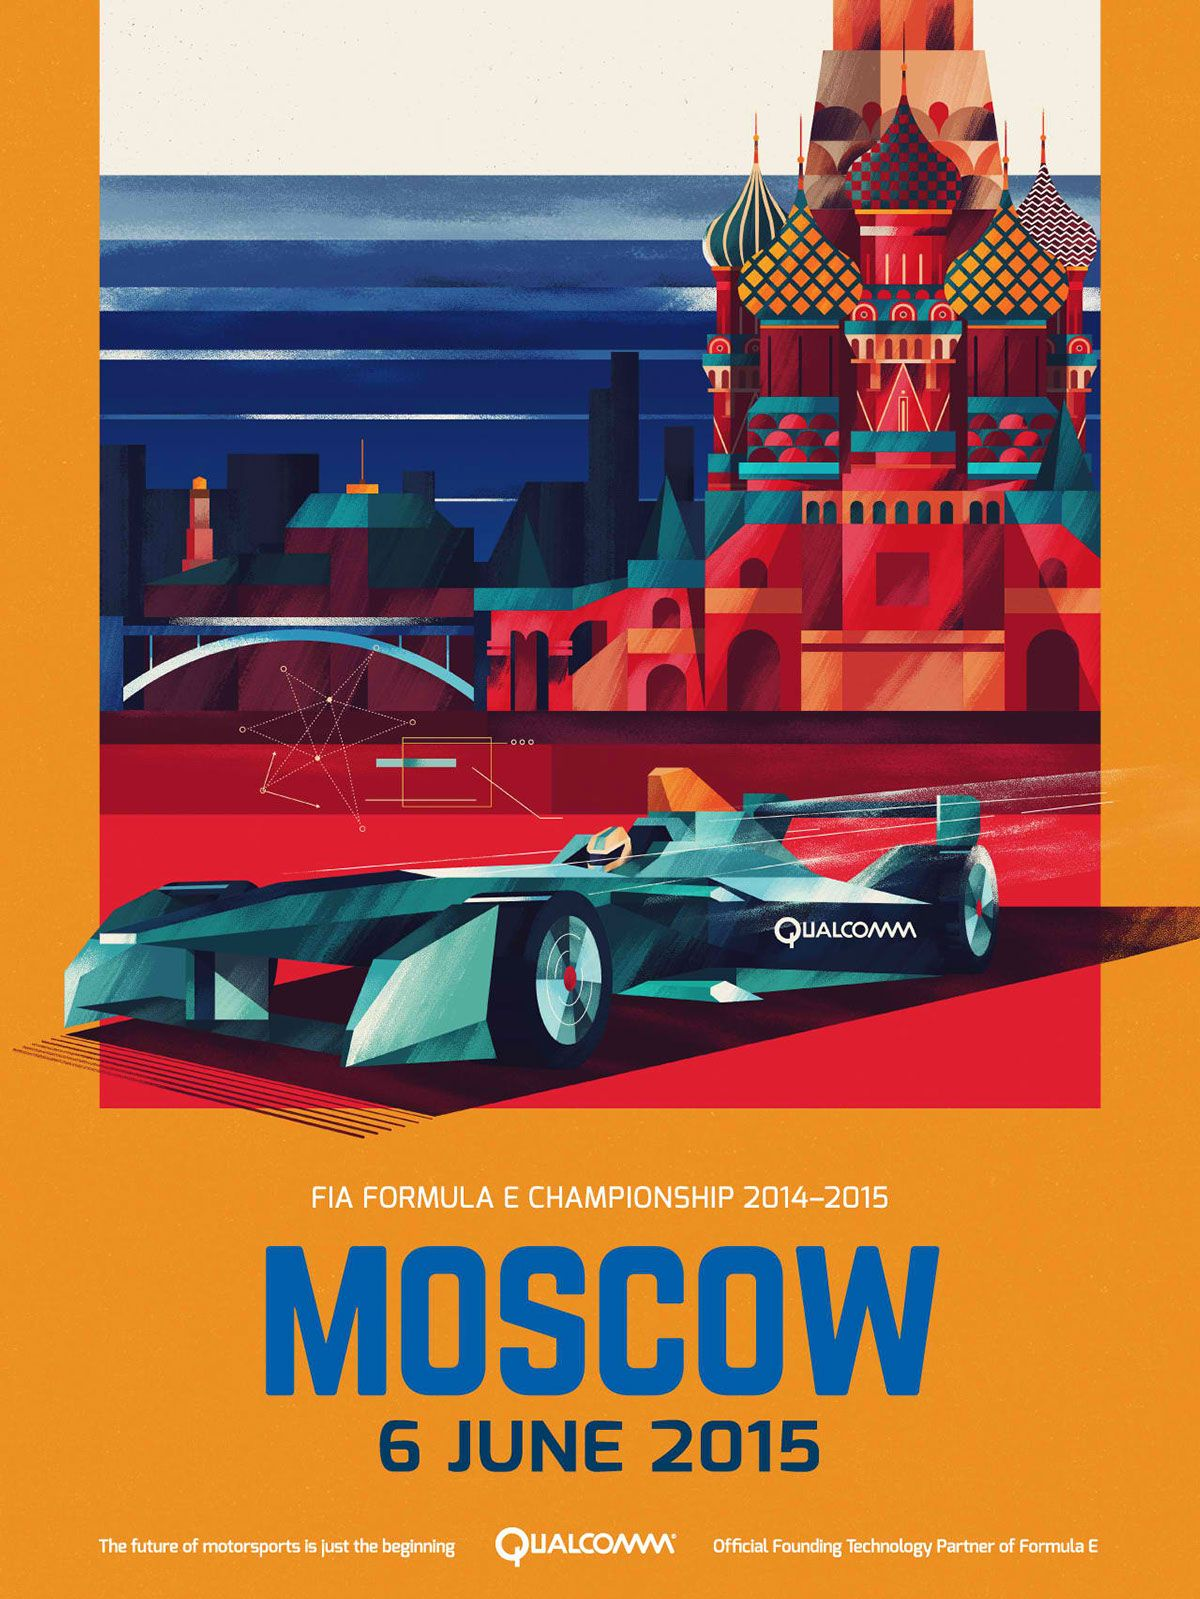 Poster design zeixs - Ip Posters I Worked On The The Illustrations For The Qualcomm Posters Of The Fia Formula E Championship The Design Direction Was To Use The Country S Flag